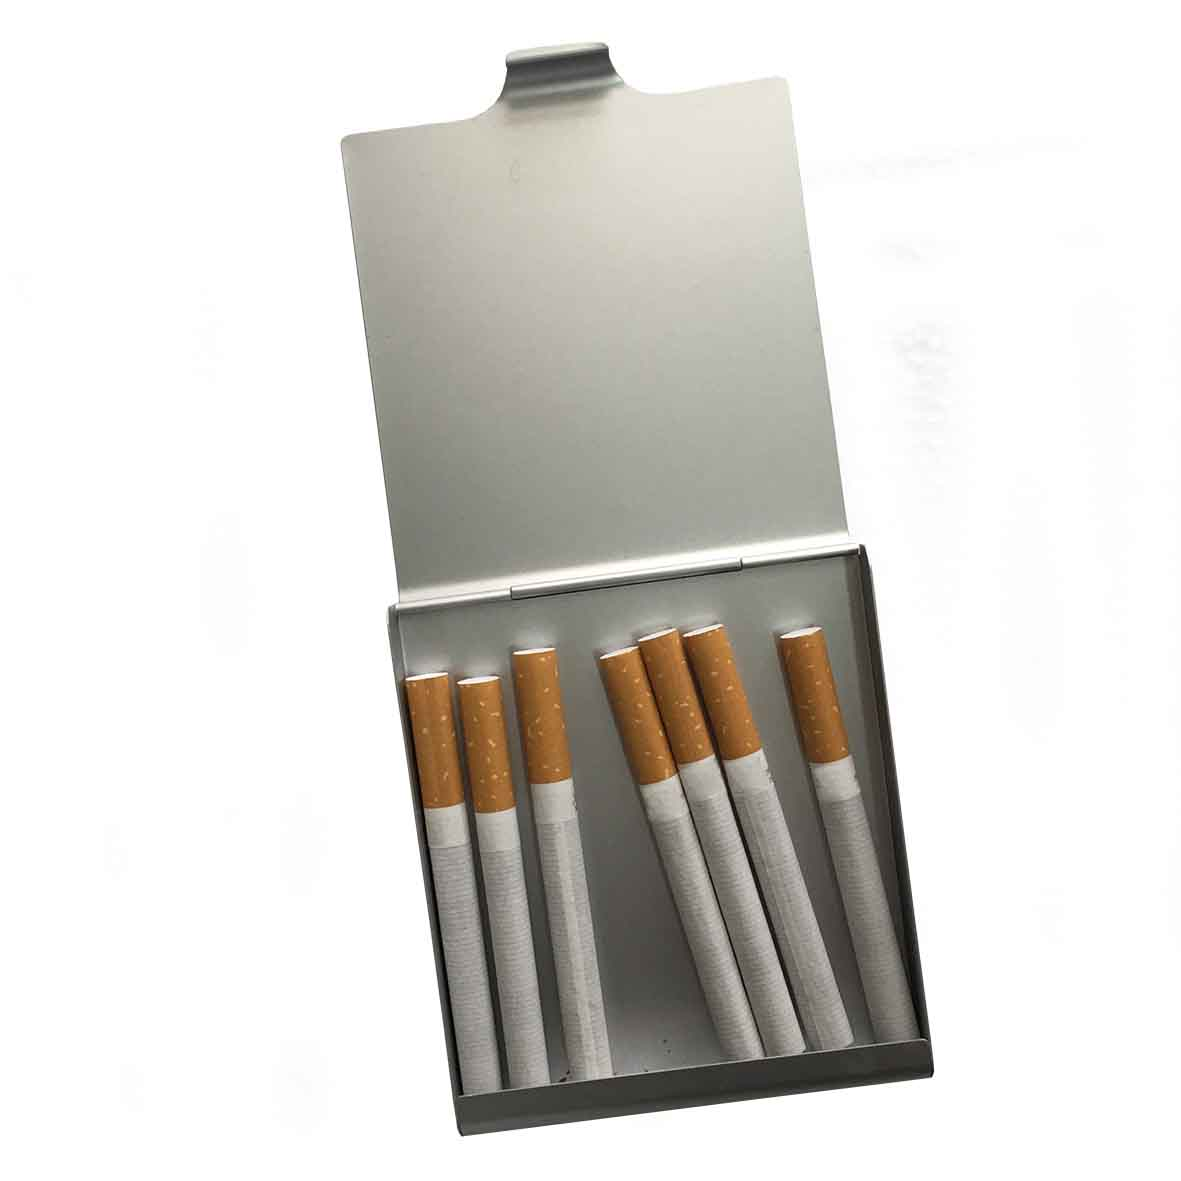 Keyholder 'House' in aluminium cigarette case al-100